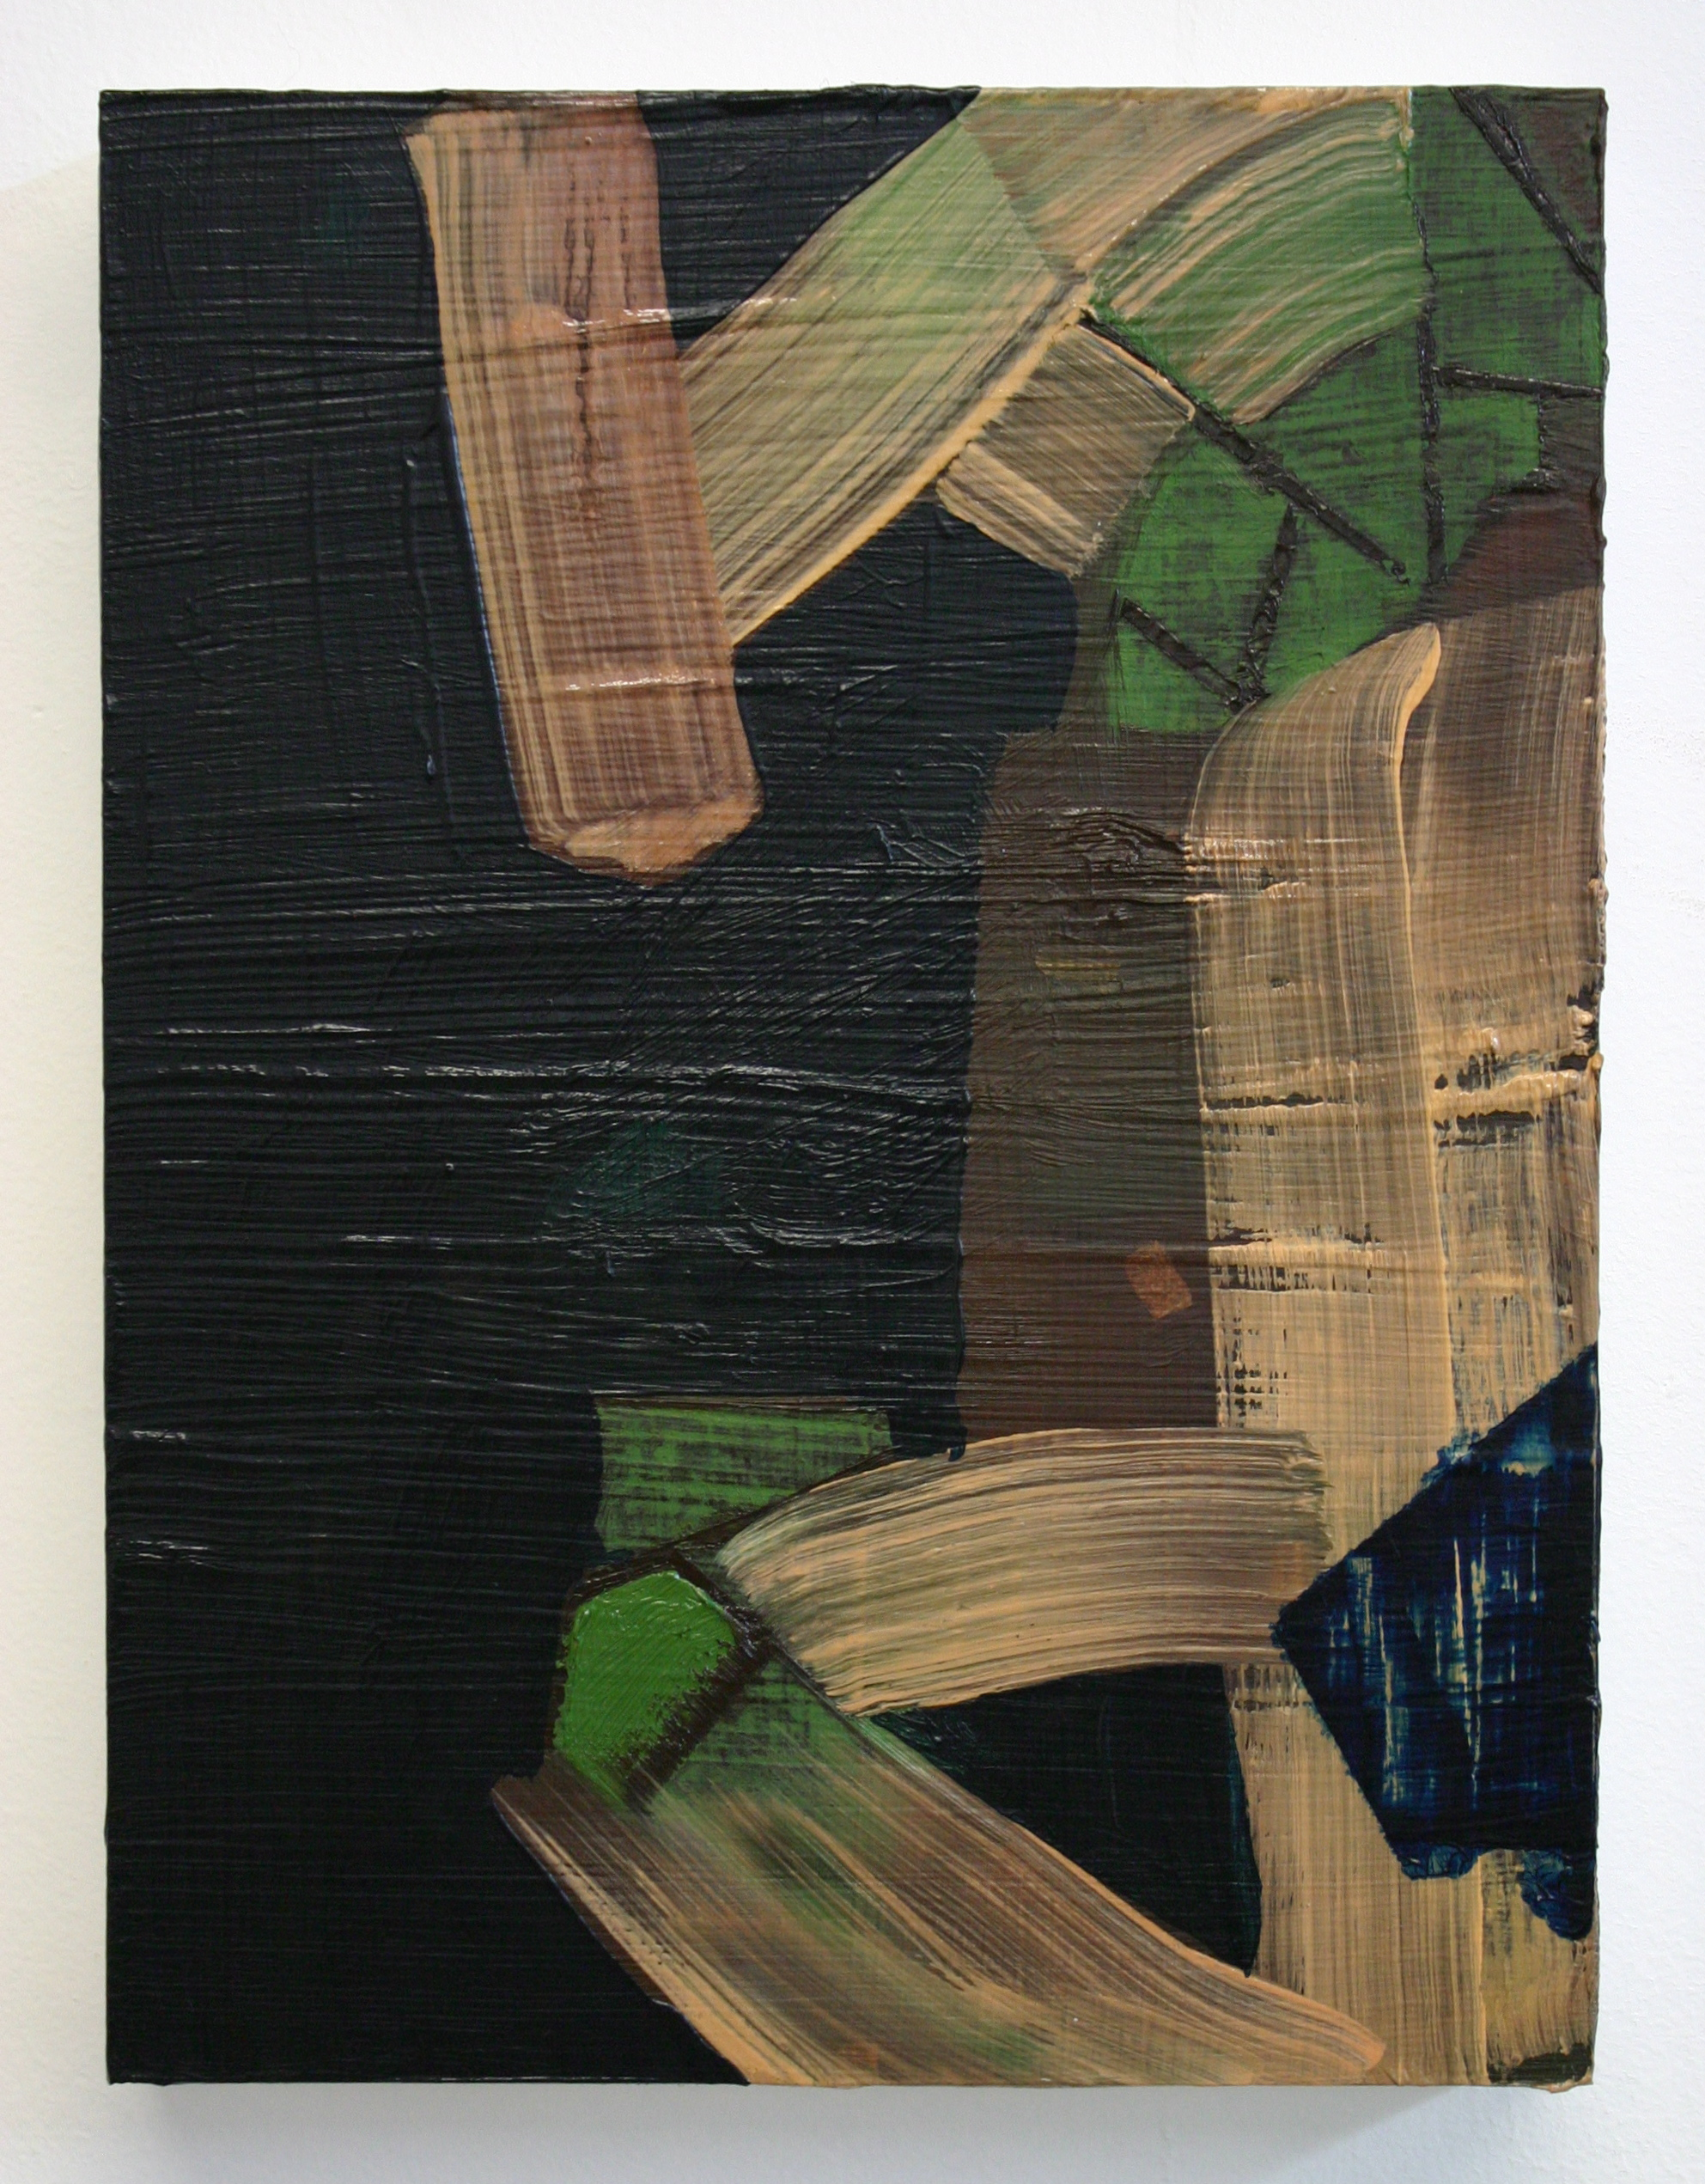 Monrovia, 2012, oil on wood panel, 8 x 6 inches